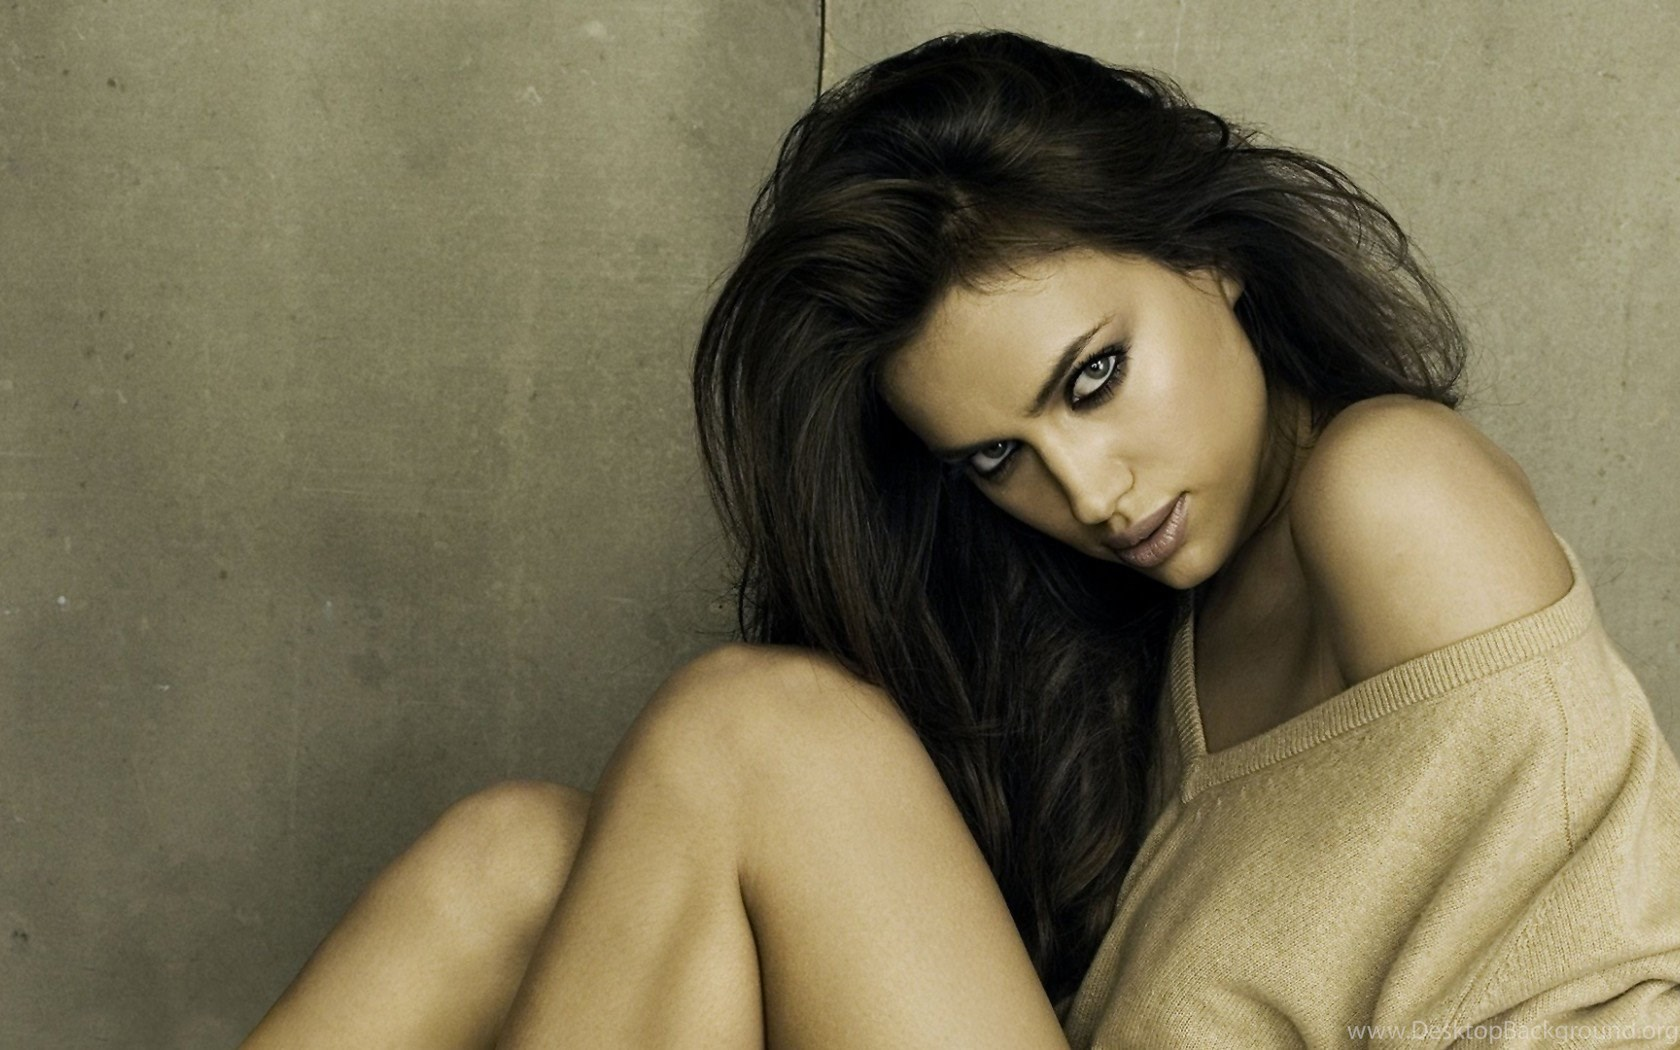 hd models hot wallpapers wallpapers